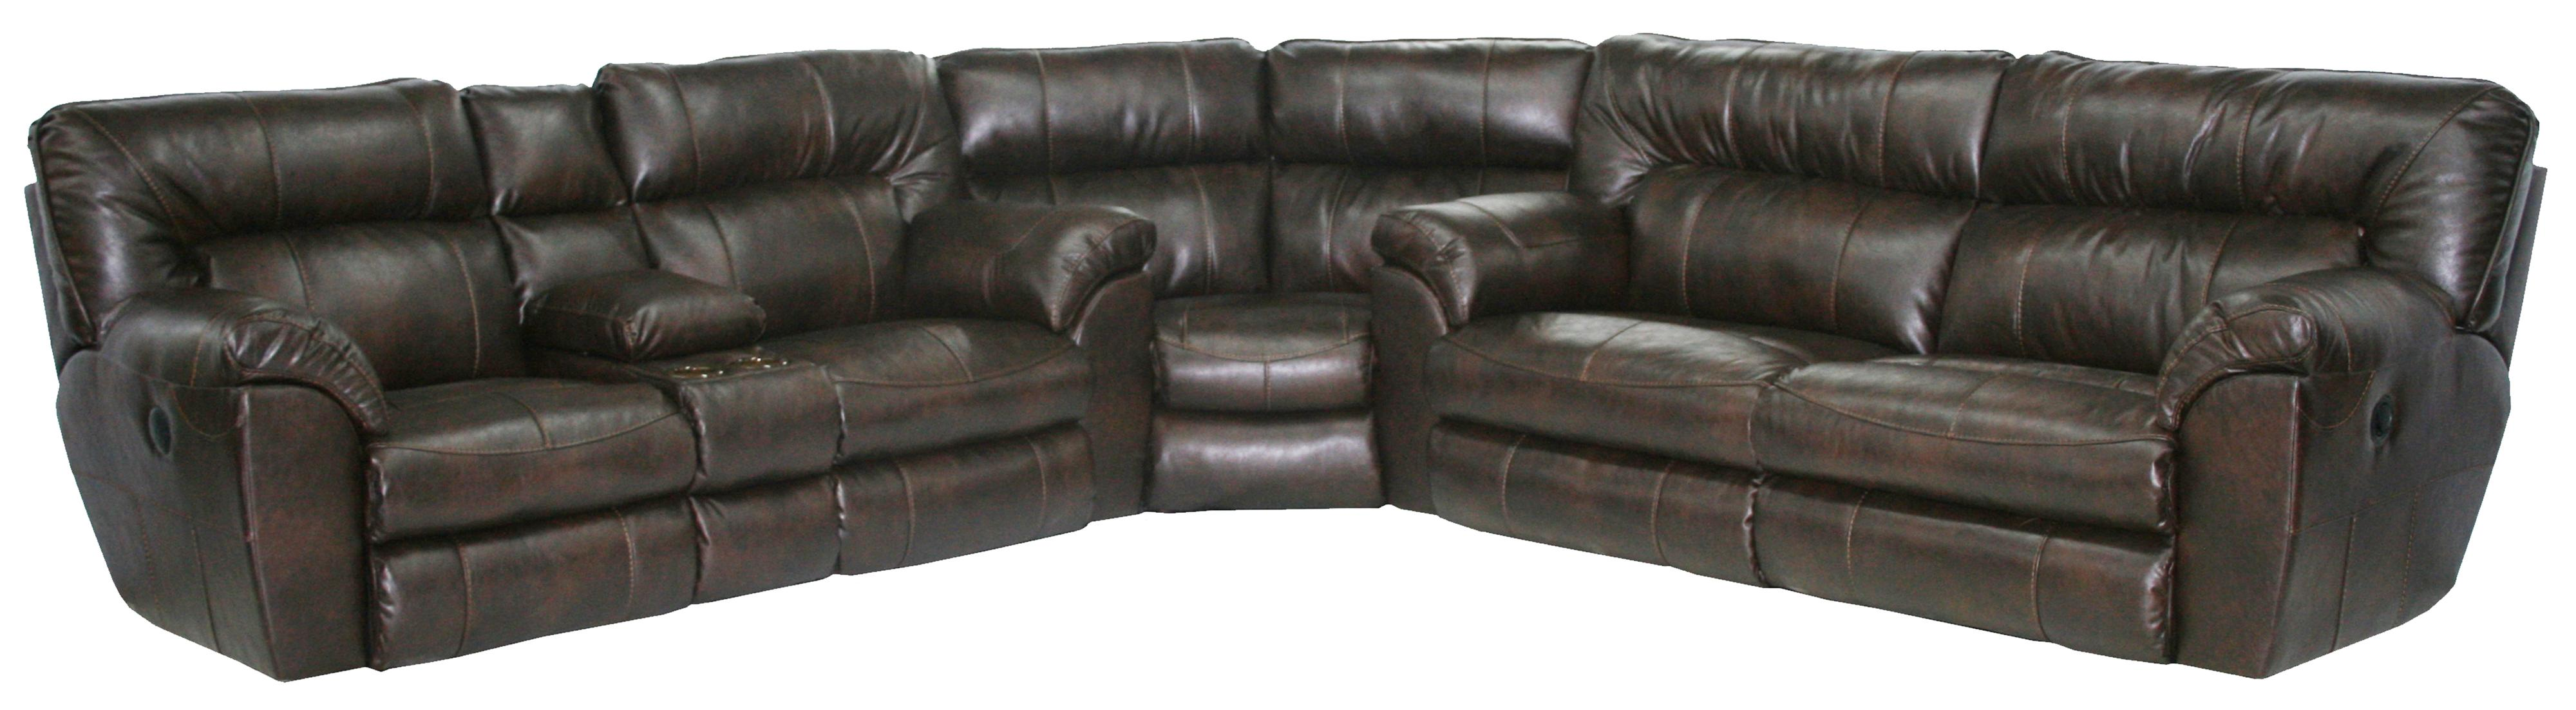 Power reclining sectional sofa with left console by for Sectional sofas power recliners